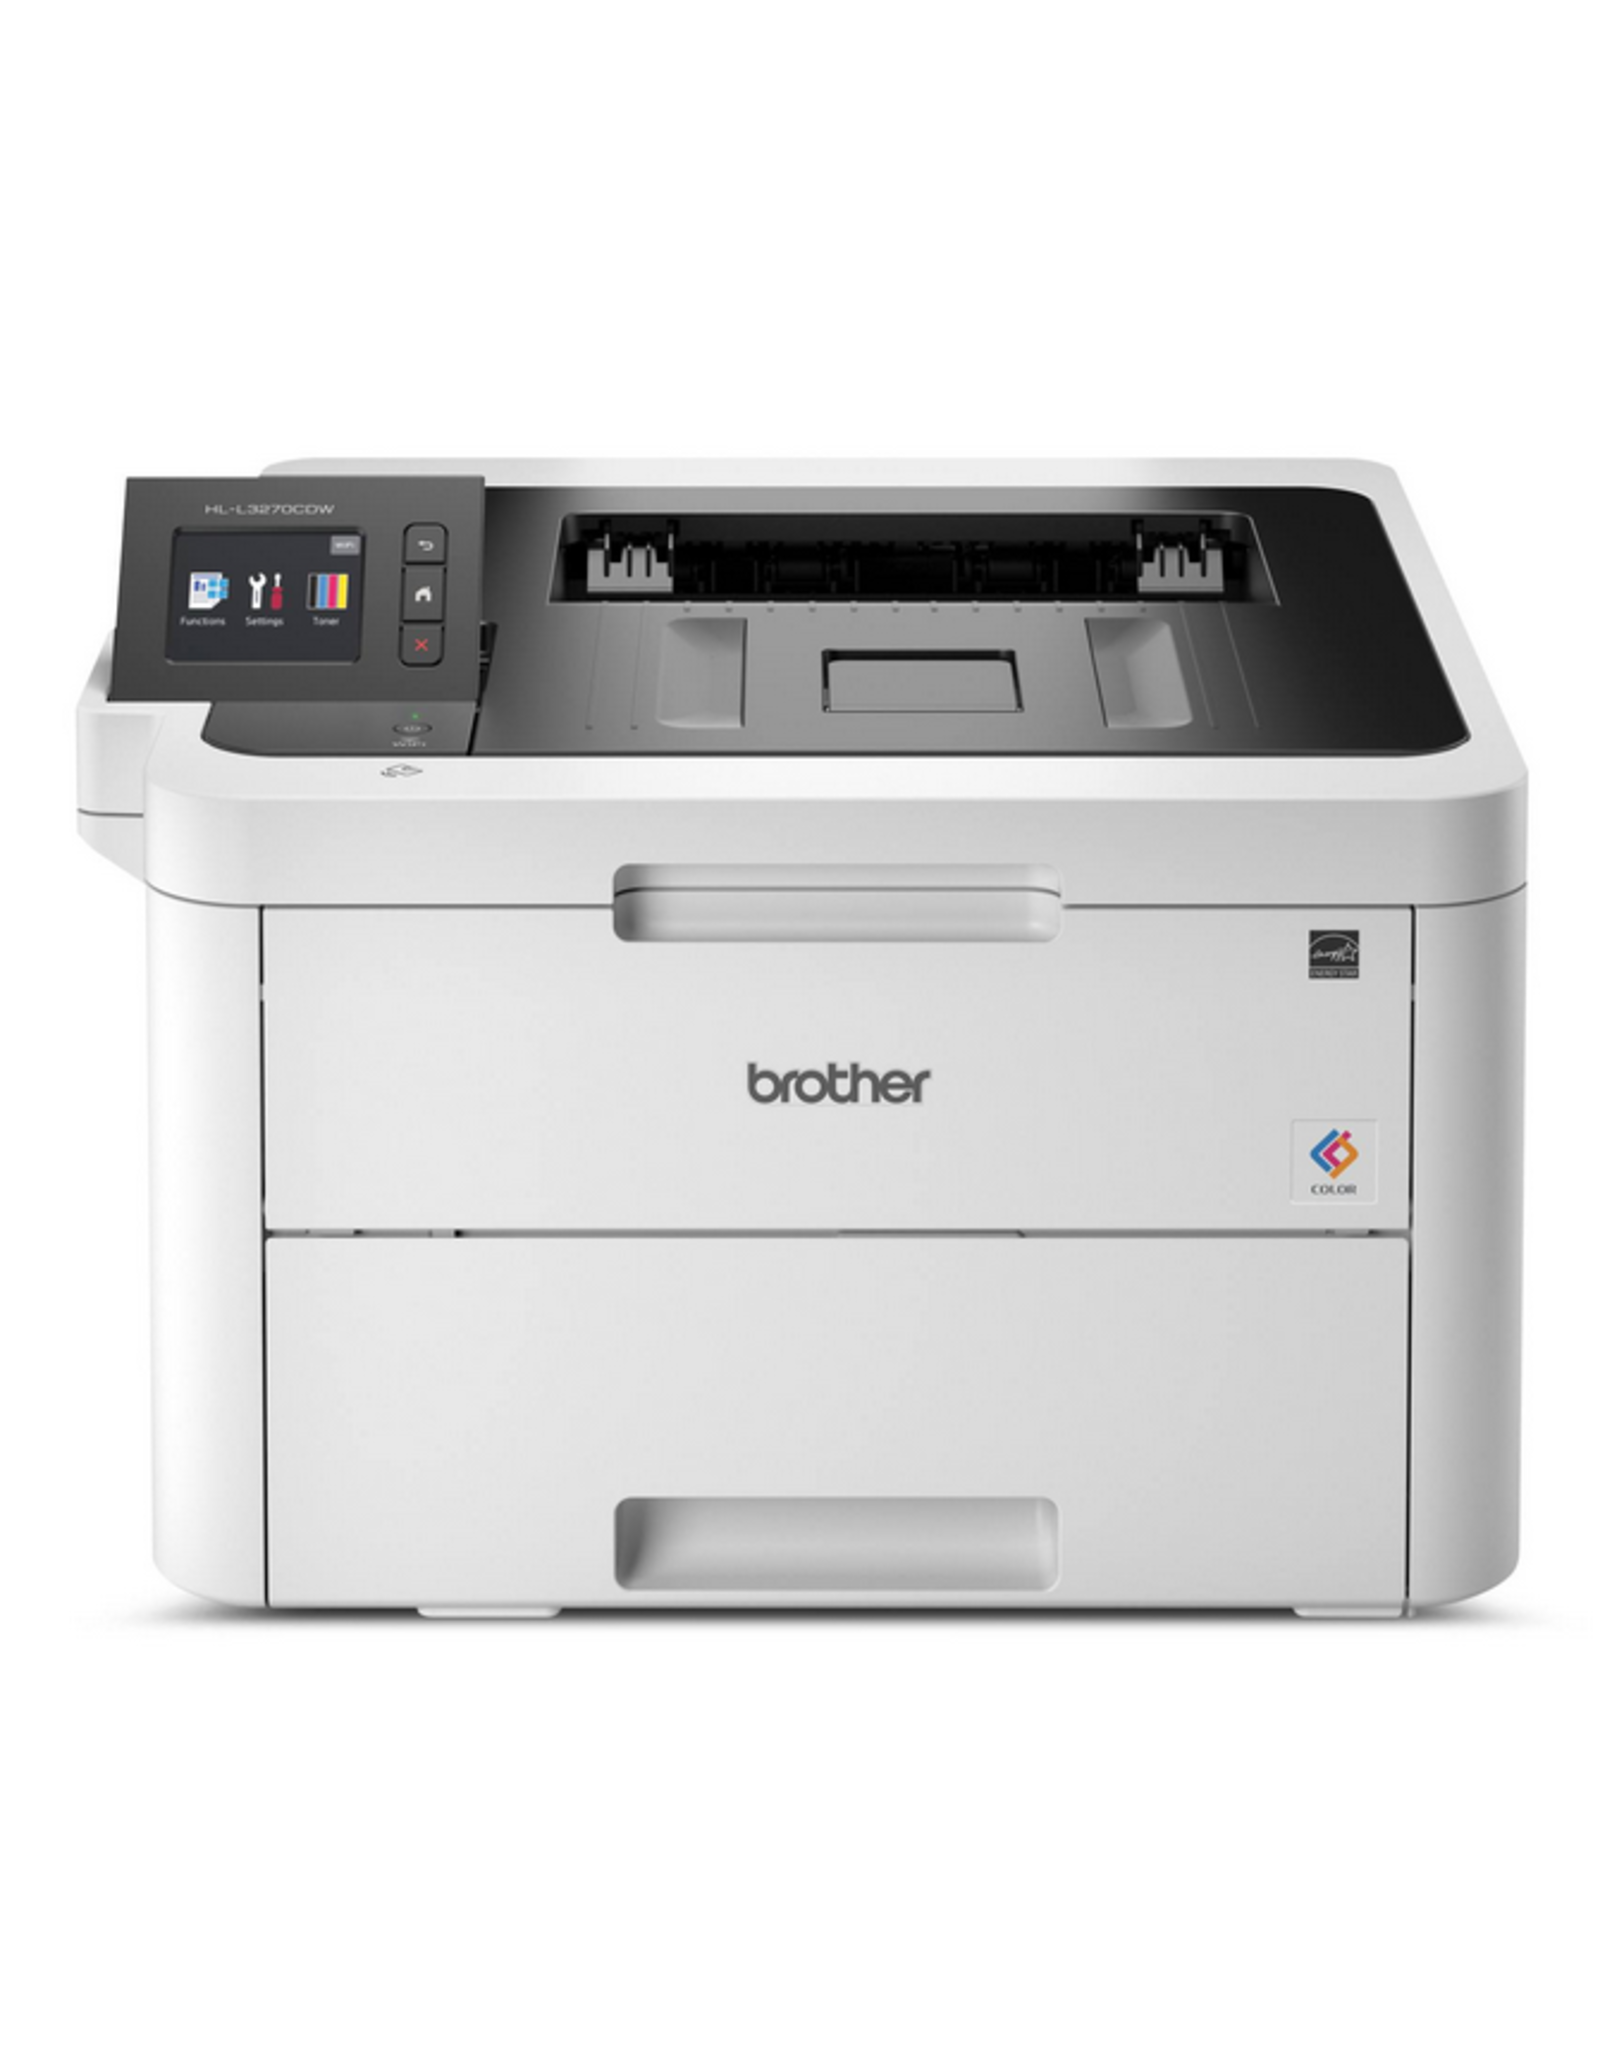 Brother Brother HL-L3210CW Colour Laser Printer